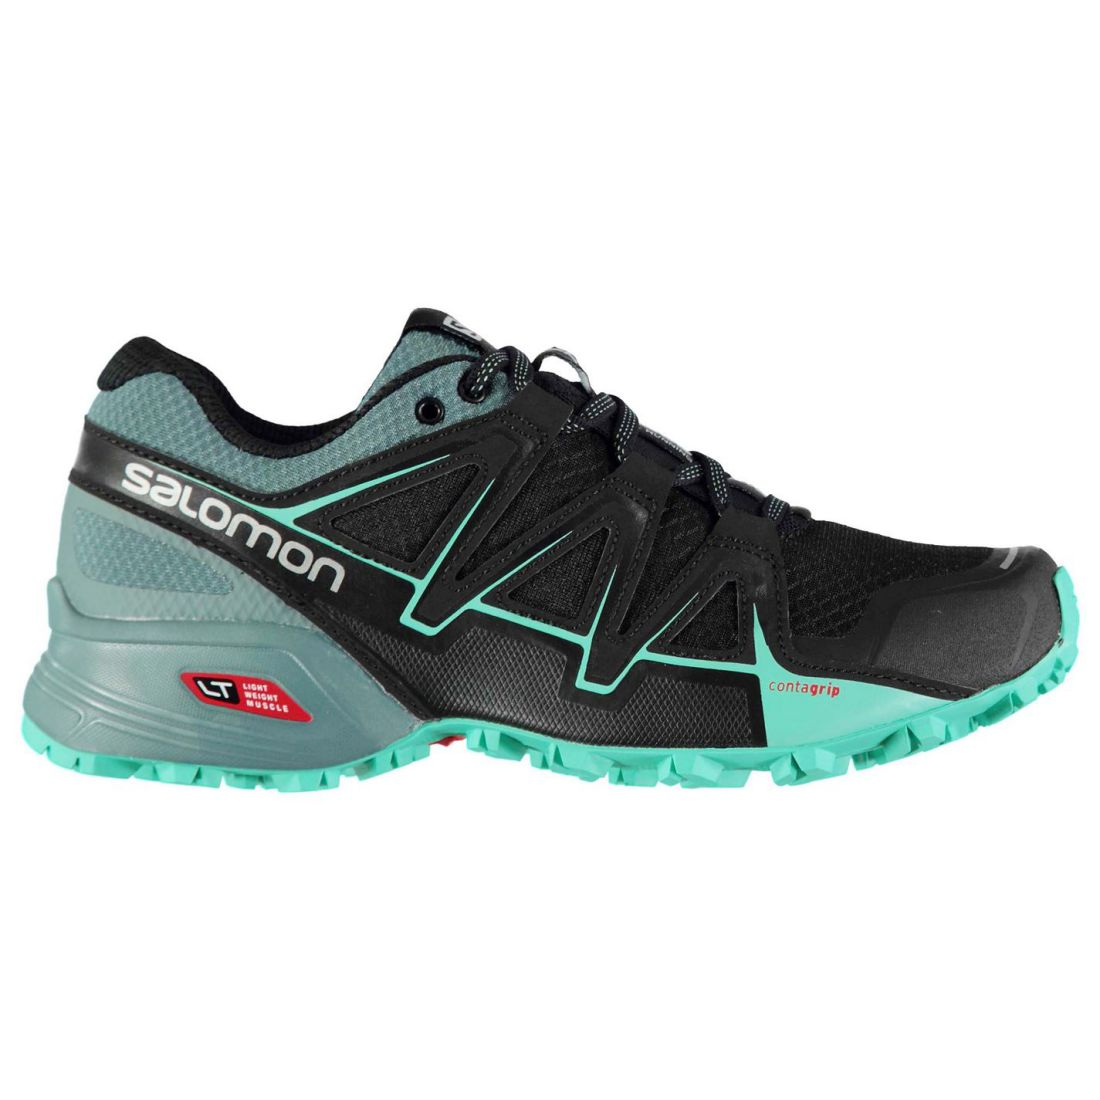 3978c0abbbe6 Salomon Speedcross Vario 2 Trail Running Shoes Ladies Laces Fastened ...